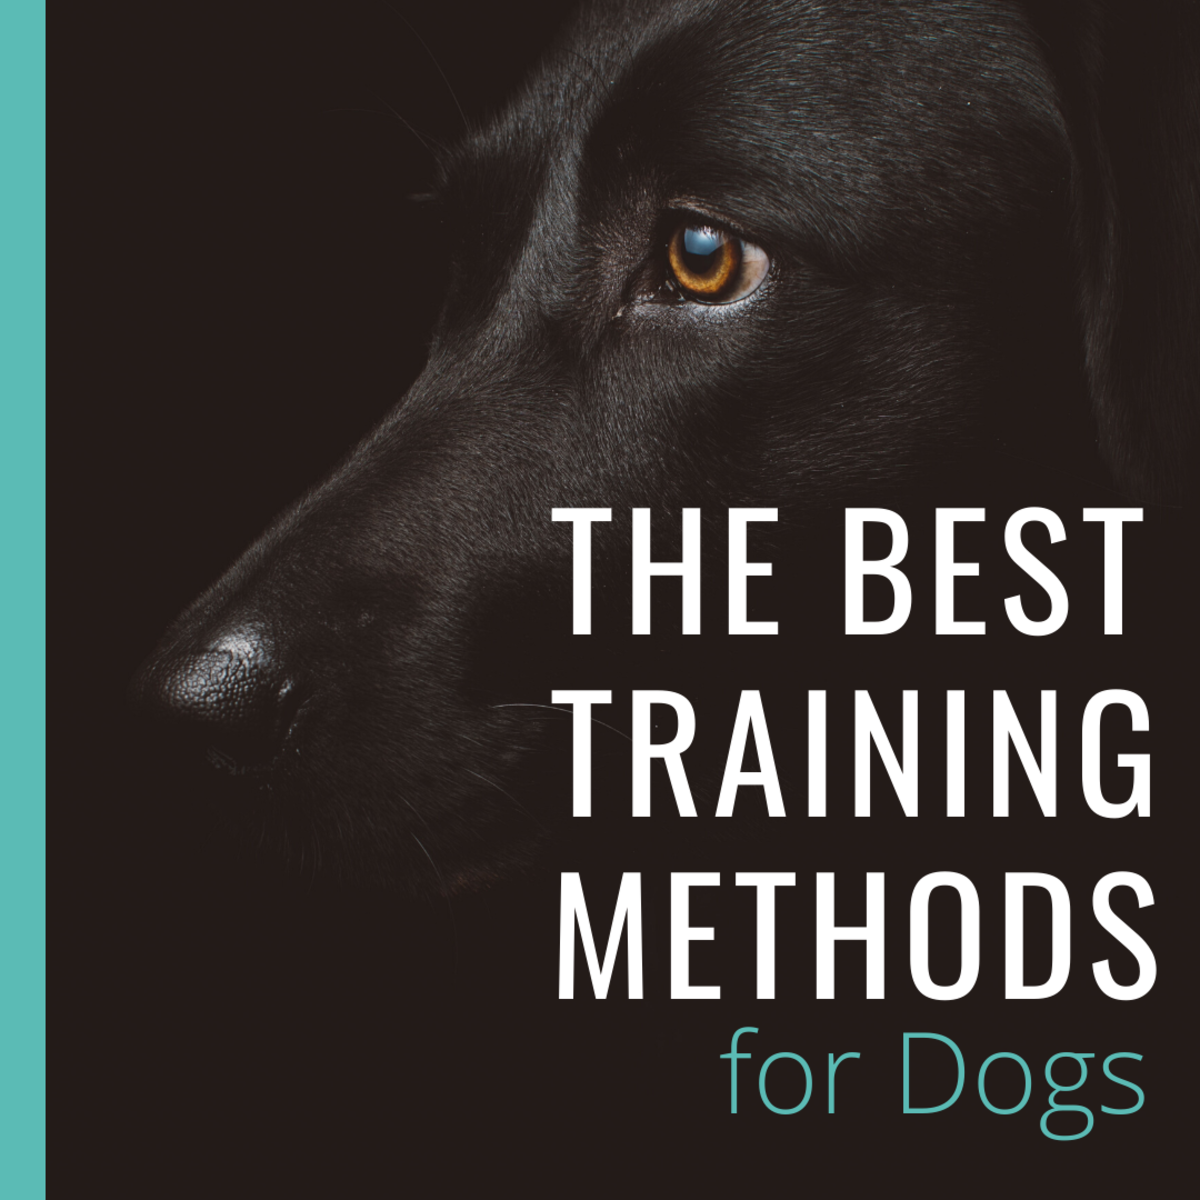 The Best Training Method for Dogs According to Research